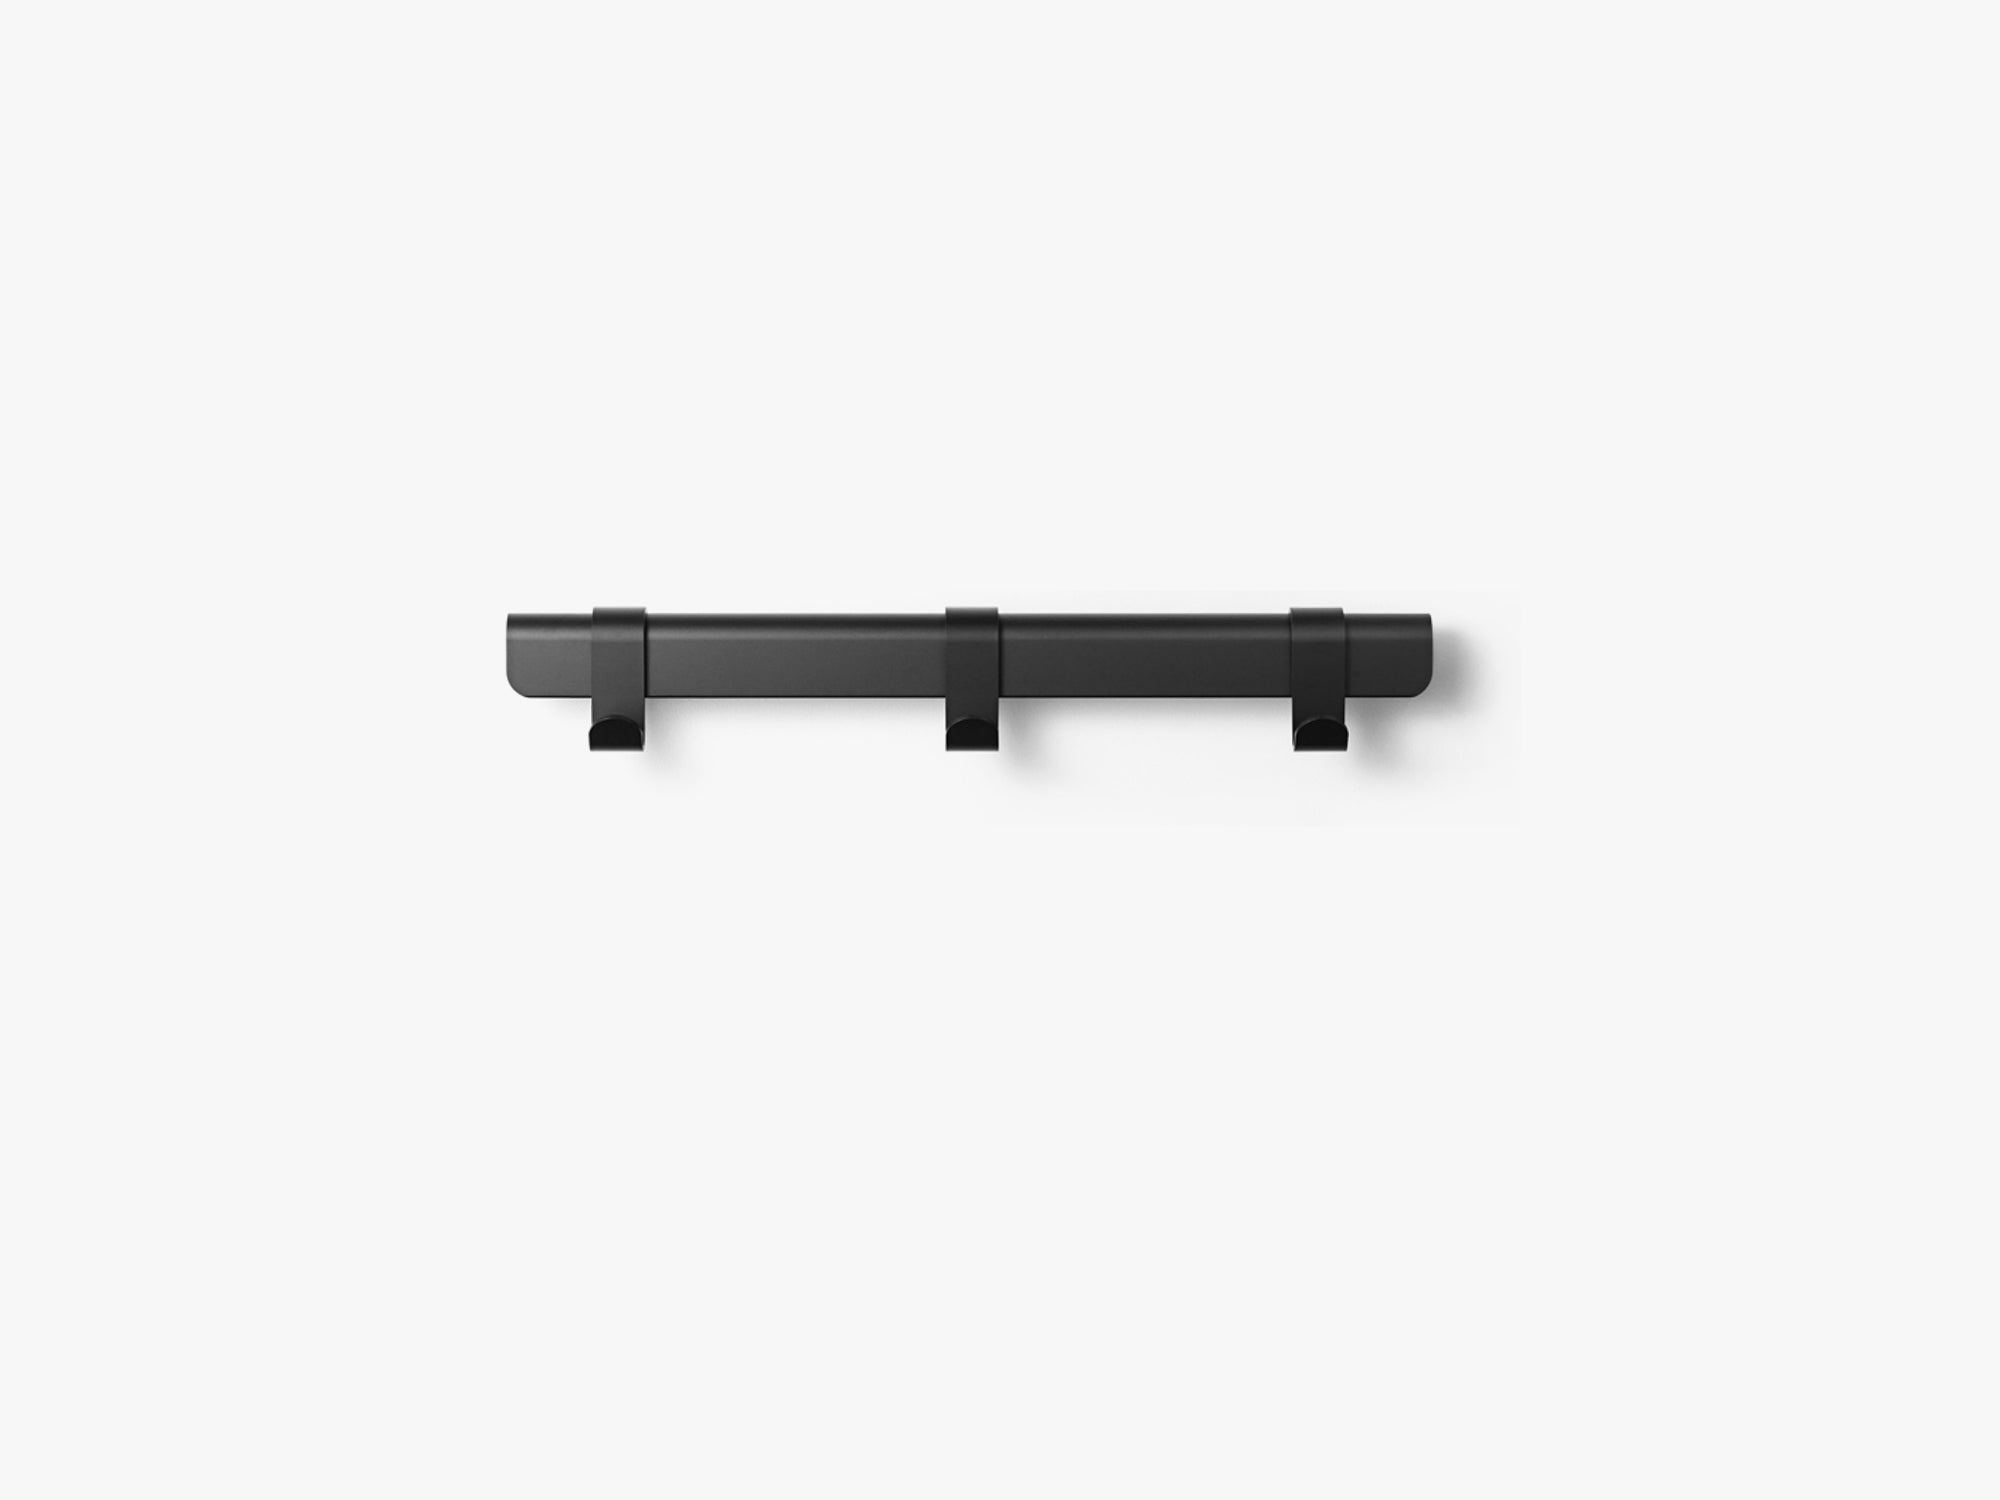 Hug Coat Rack 60cm, Black/3 Hooks fra MILLION